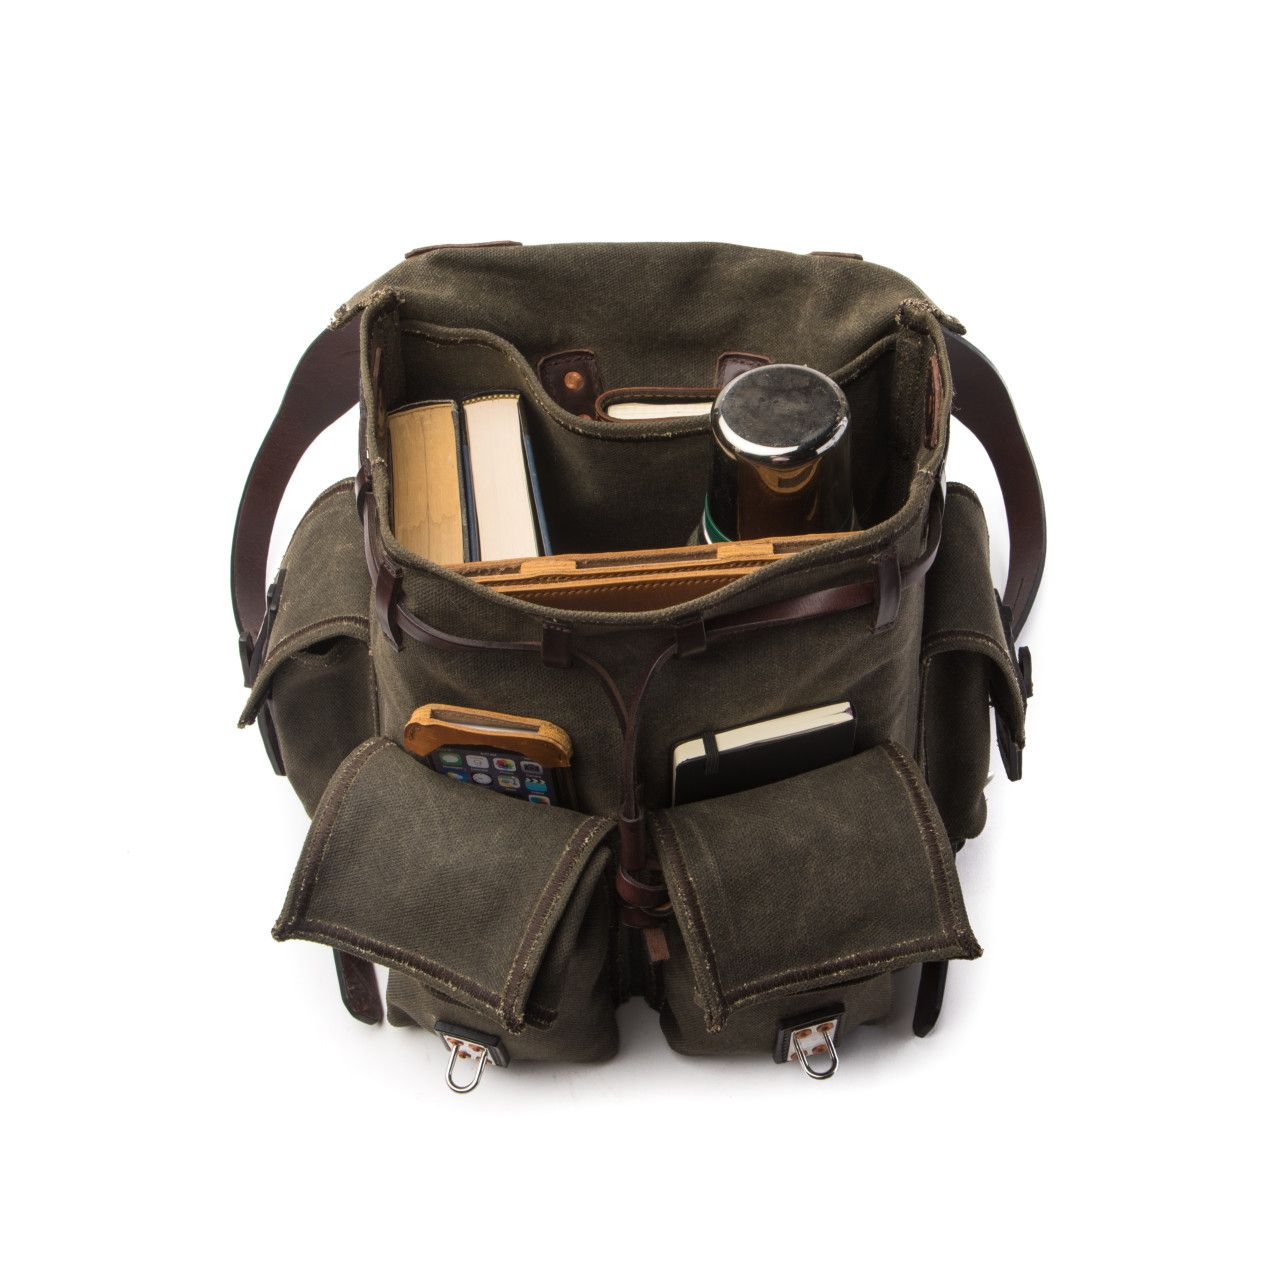 inside the canvas backpack medium in moss green canvas are thermos, books, notepad, iphone